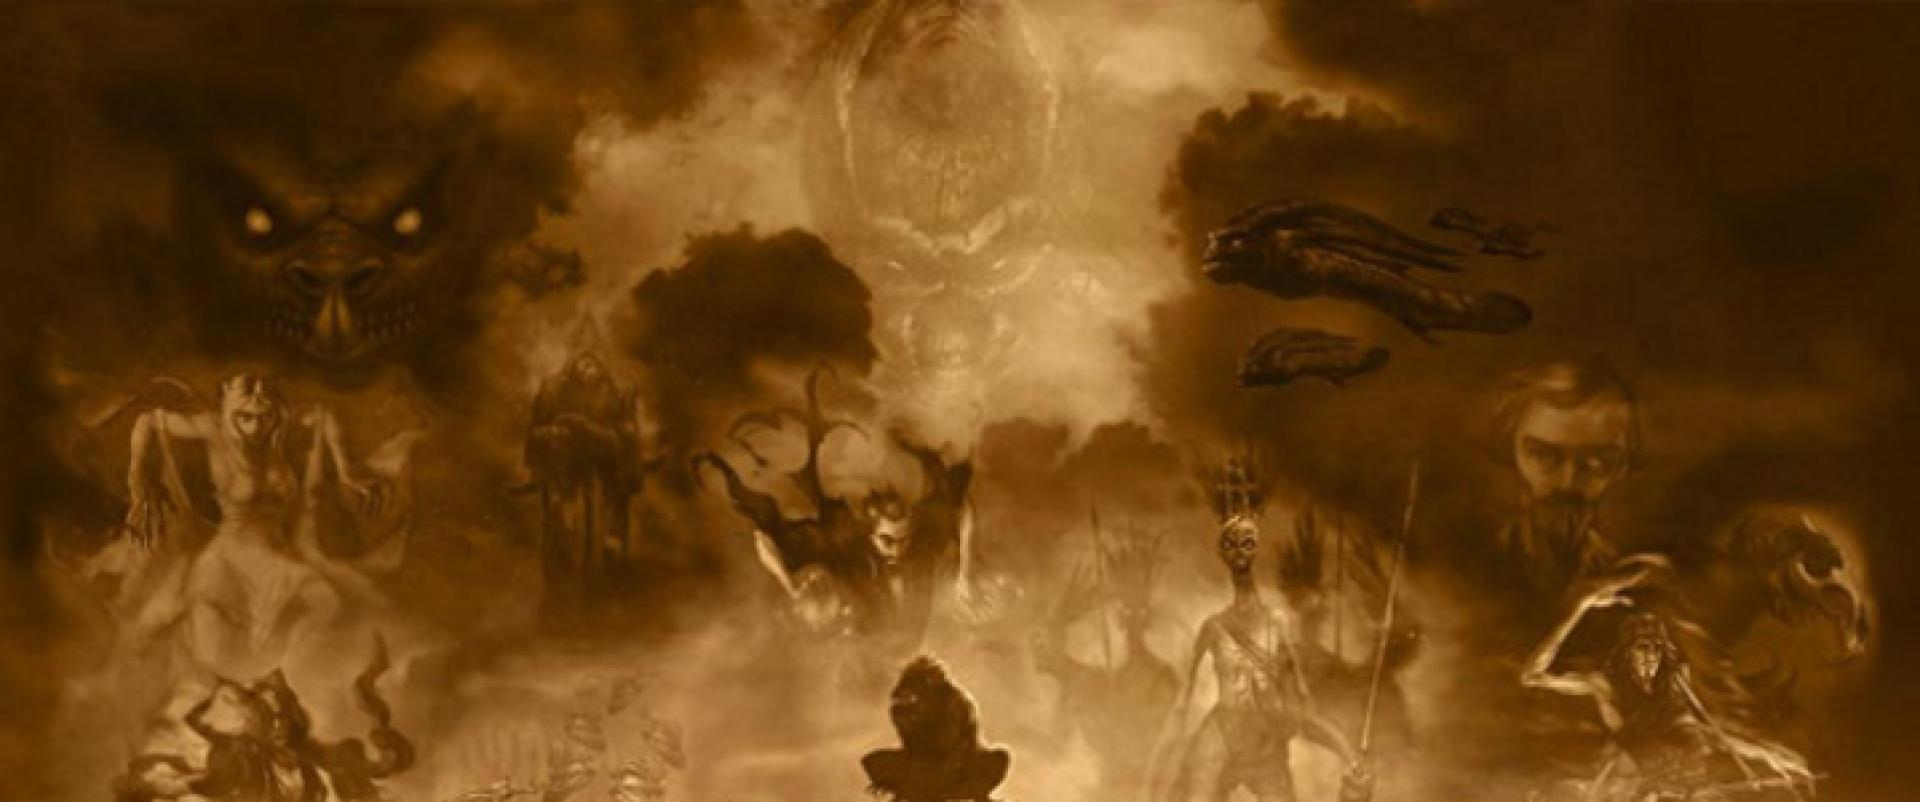 Clive Barker's Undying (2001)